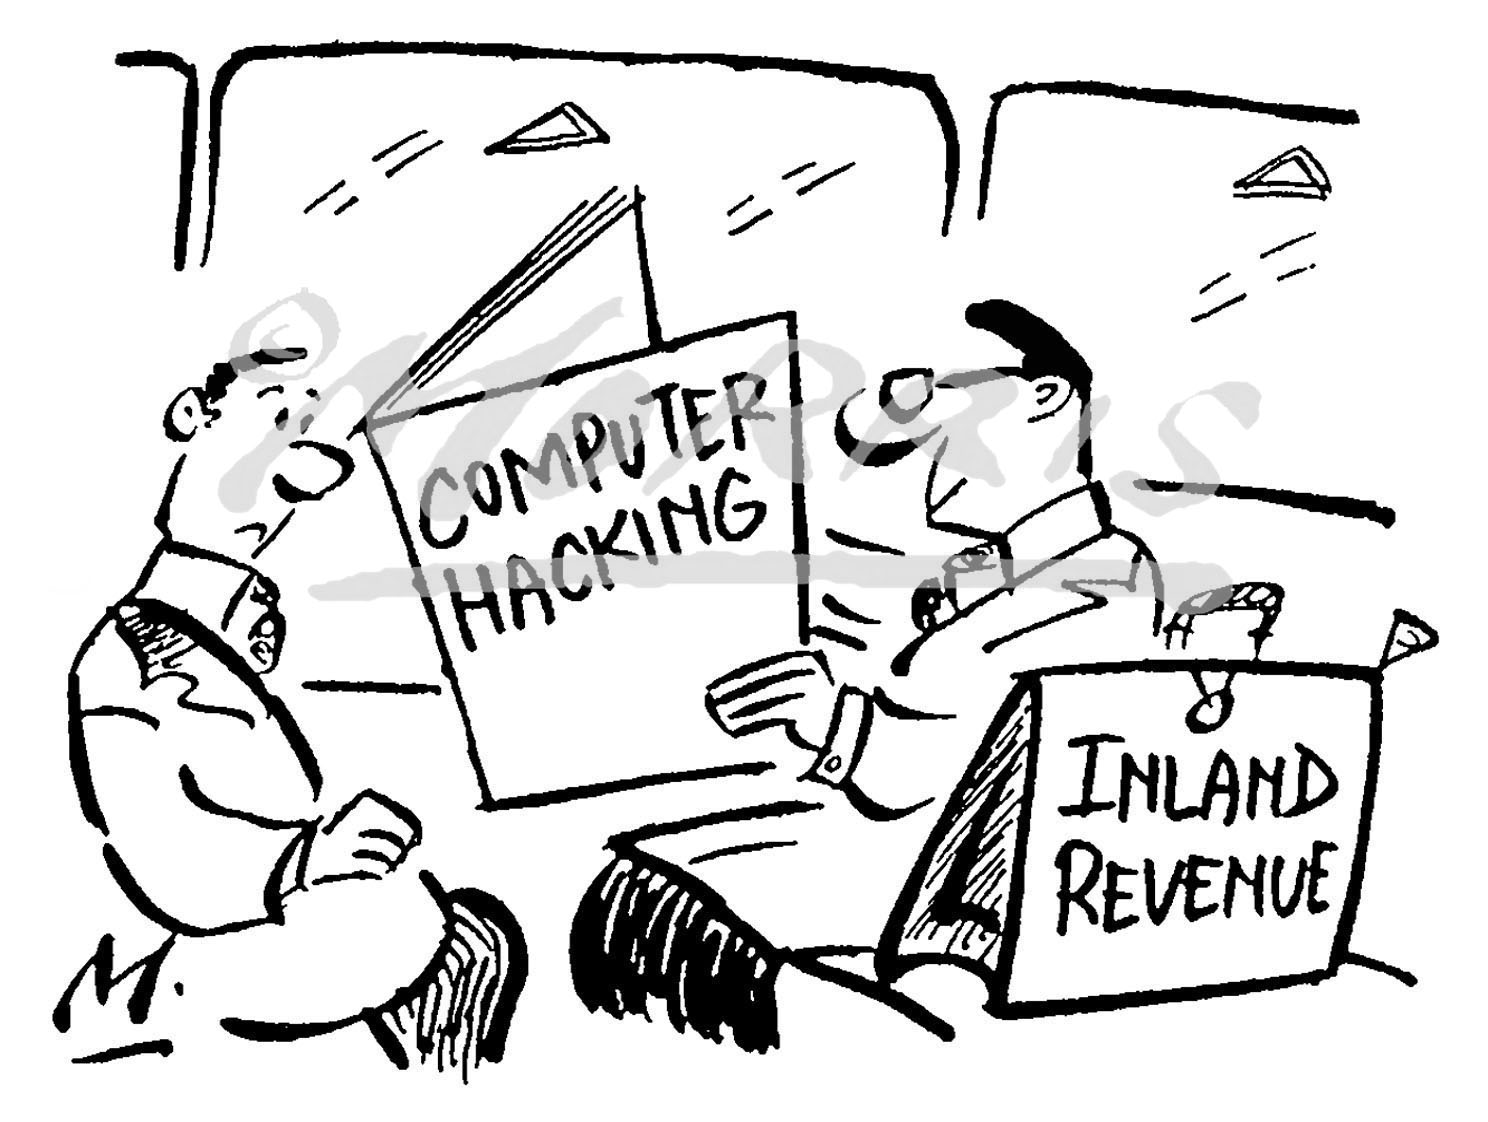 Computer hacking cartoon – Ref: 0540bw